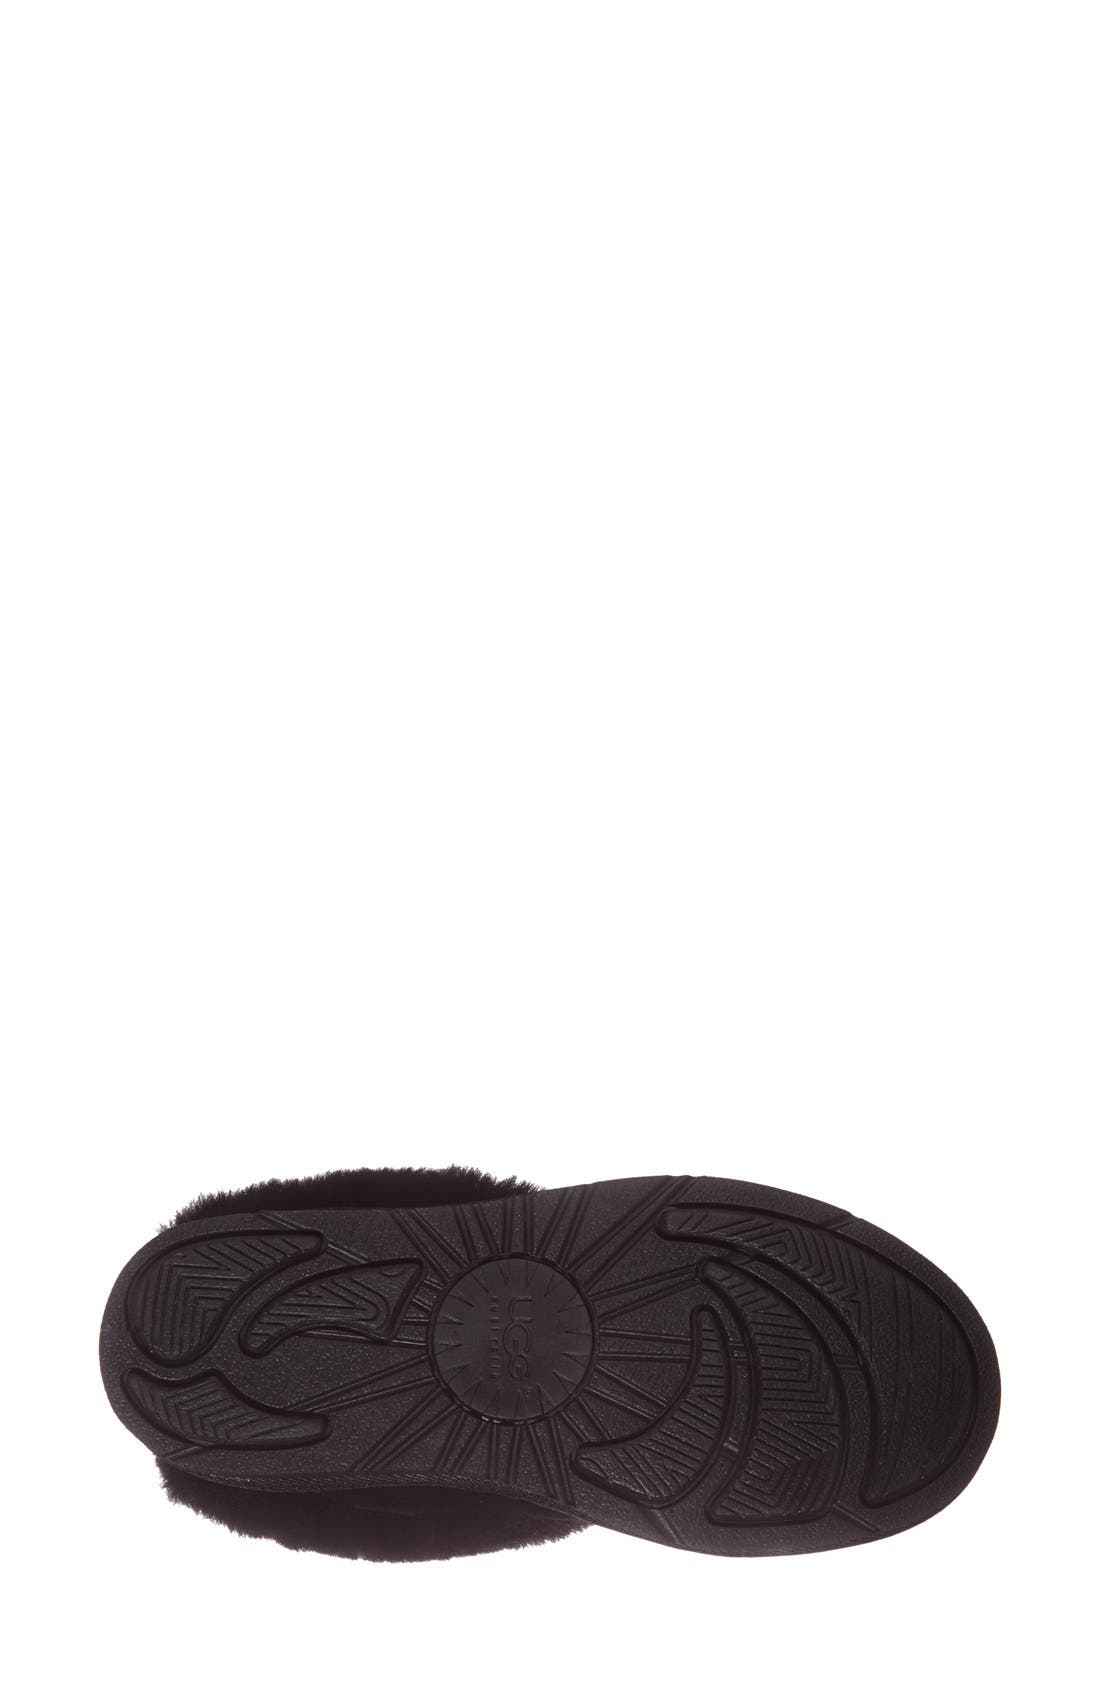 Alternate Image 4  - UGG® 'Patten' Water Resistant Silkee™ Suede Shearling Cuff Boot (Women)